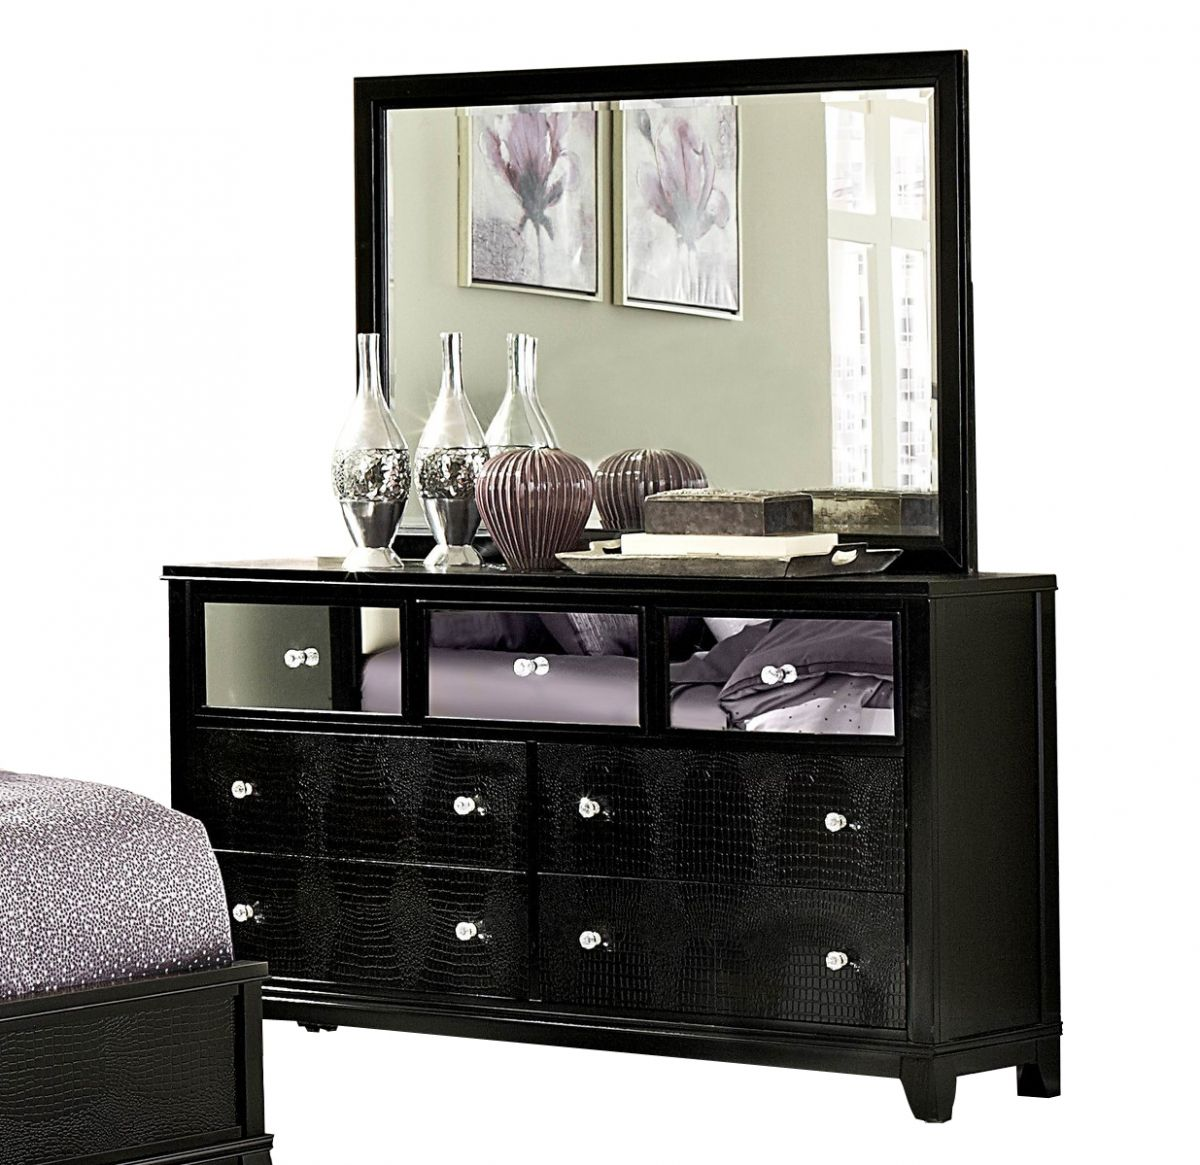 Jacqueline Black Wood Glass Dresser Mirror Black Bedroom